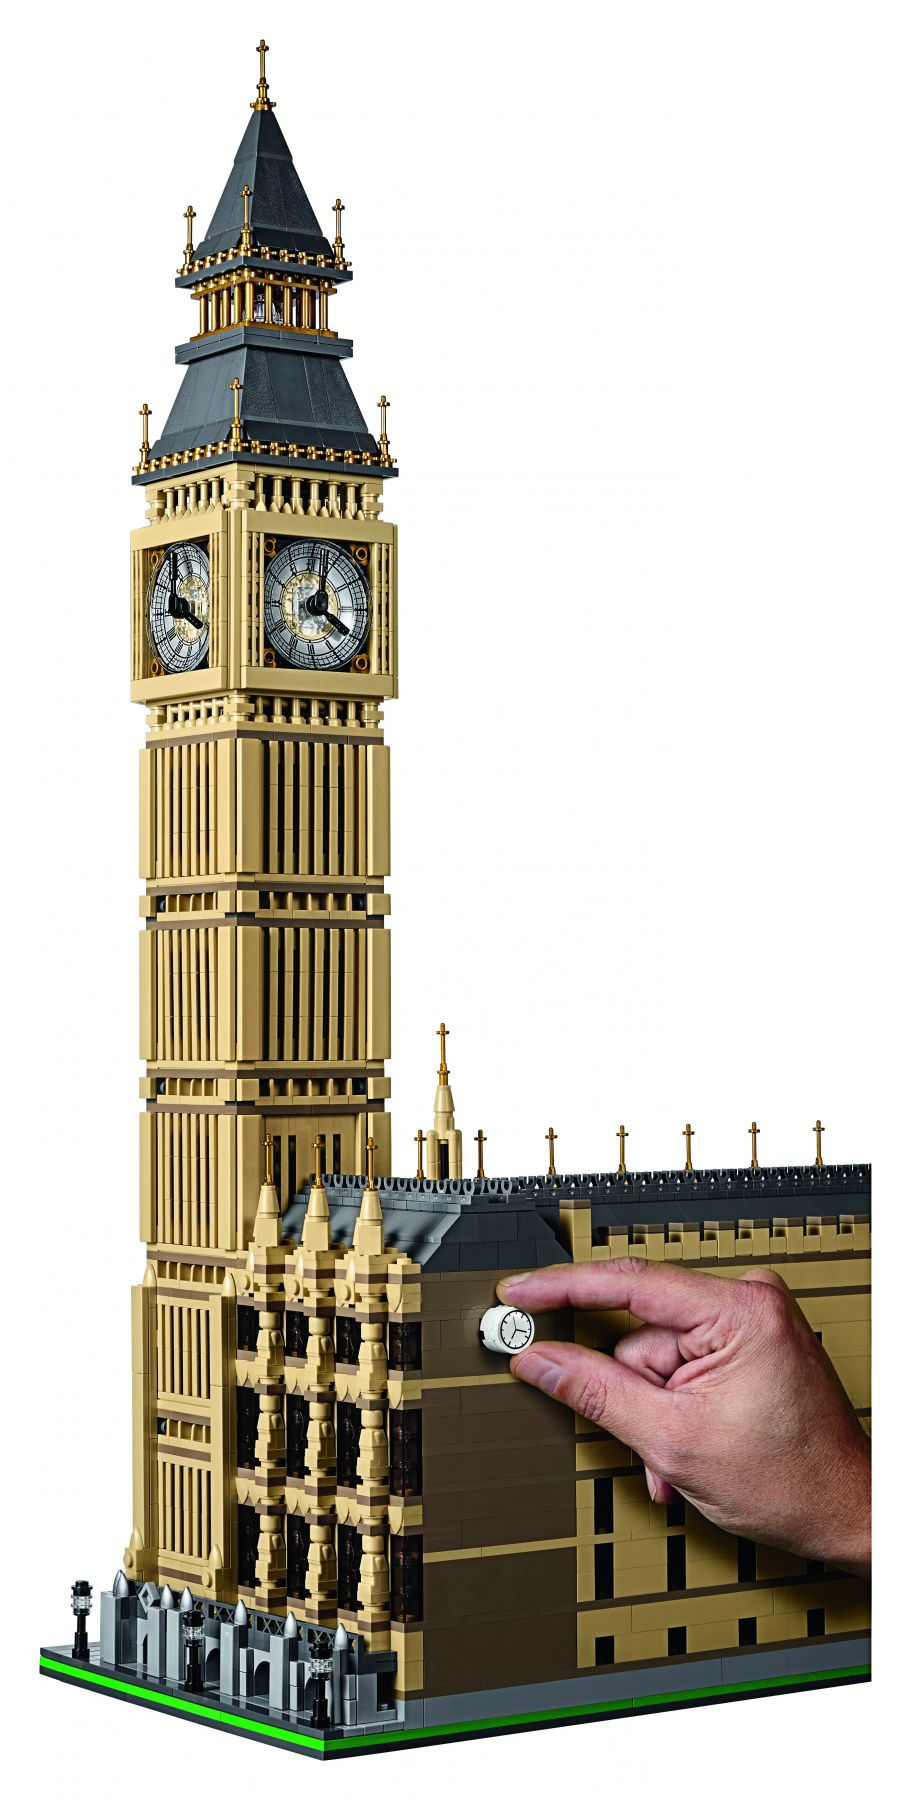 LEGO Advanced Models 10253 Big Ben LEGO_Creator_Big_Ben_10253-9.jpg